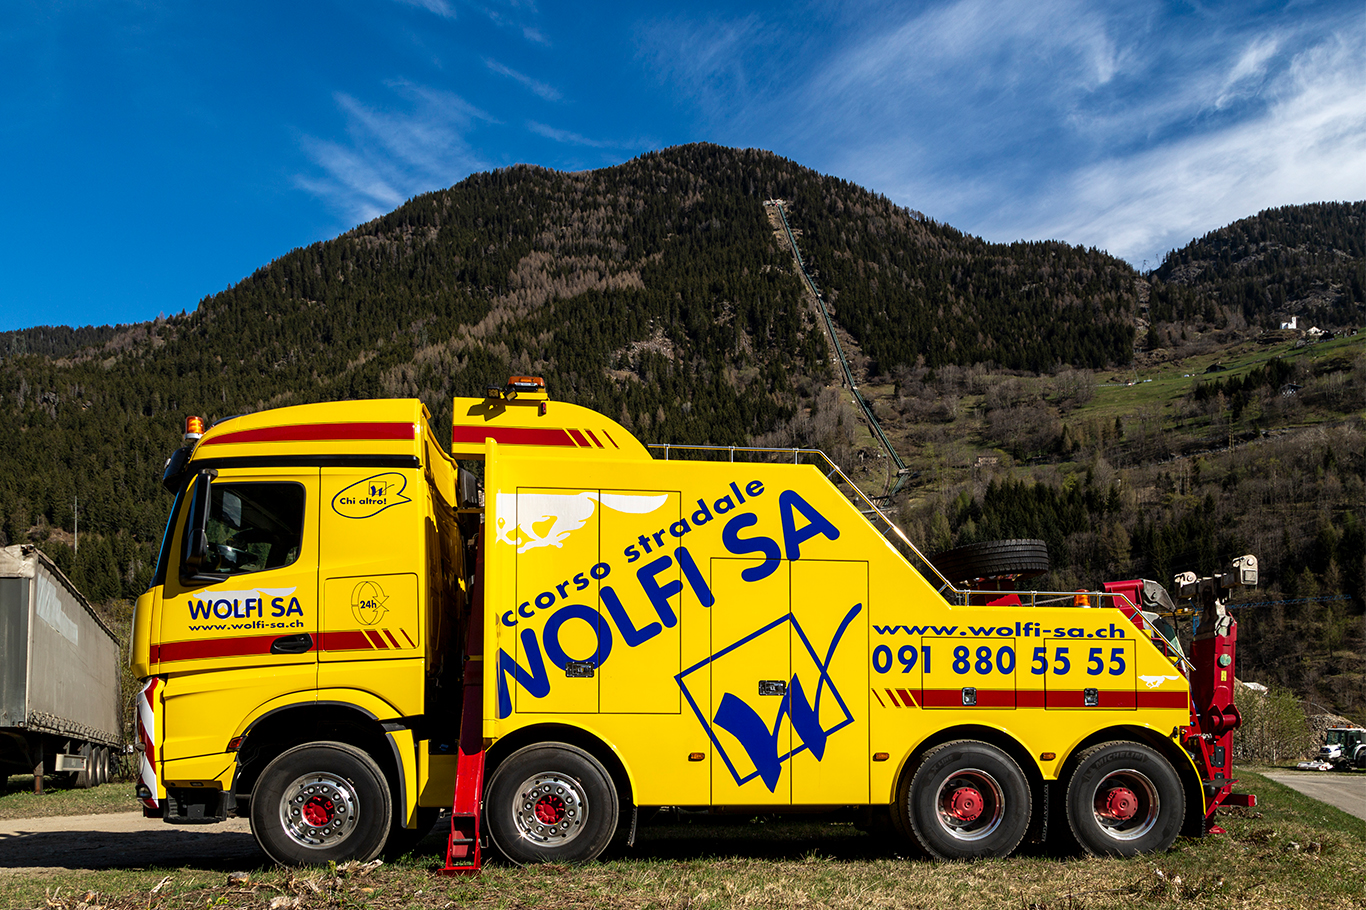 //wolfisa.ch/wp-content/uploads/2020/04/Camion.jpg